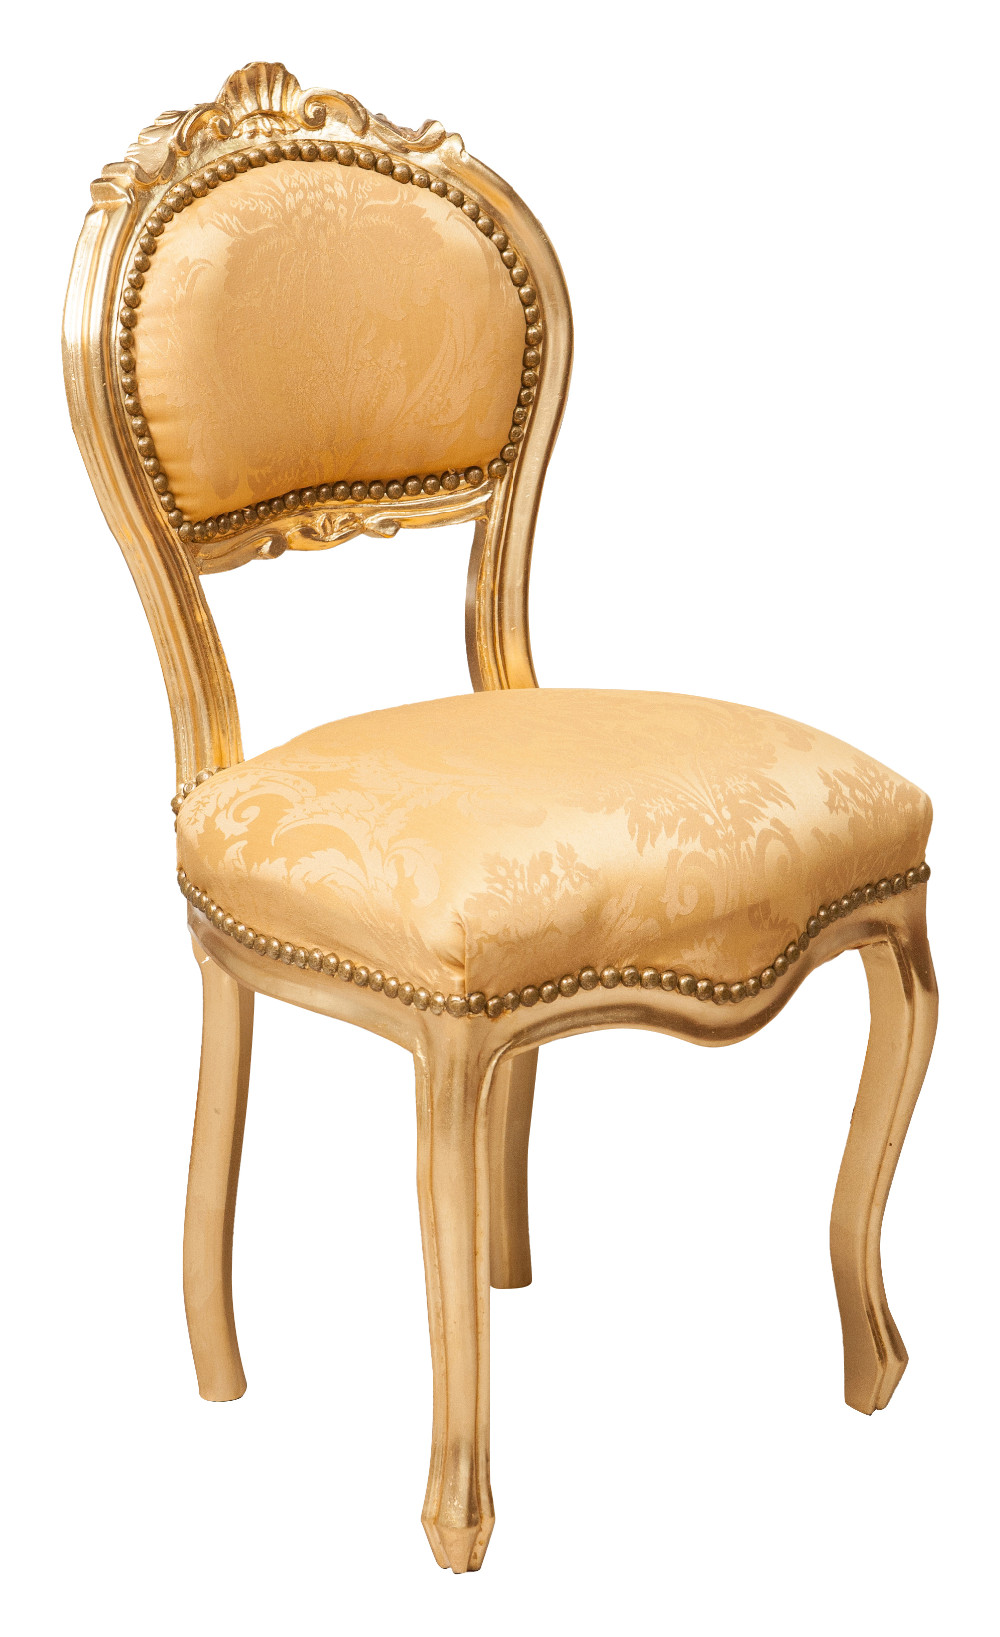 Biscottini International Art Trading louis xvi french style solid beech wood chair - buy wood